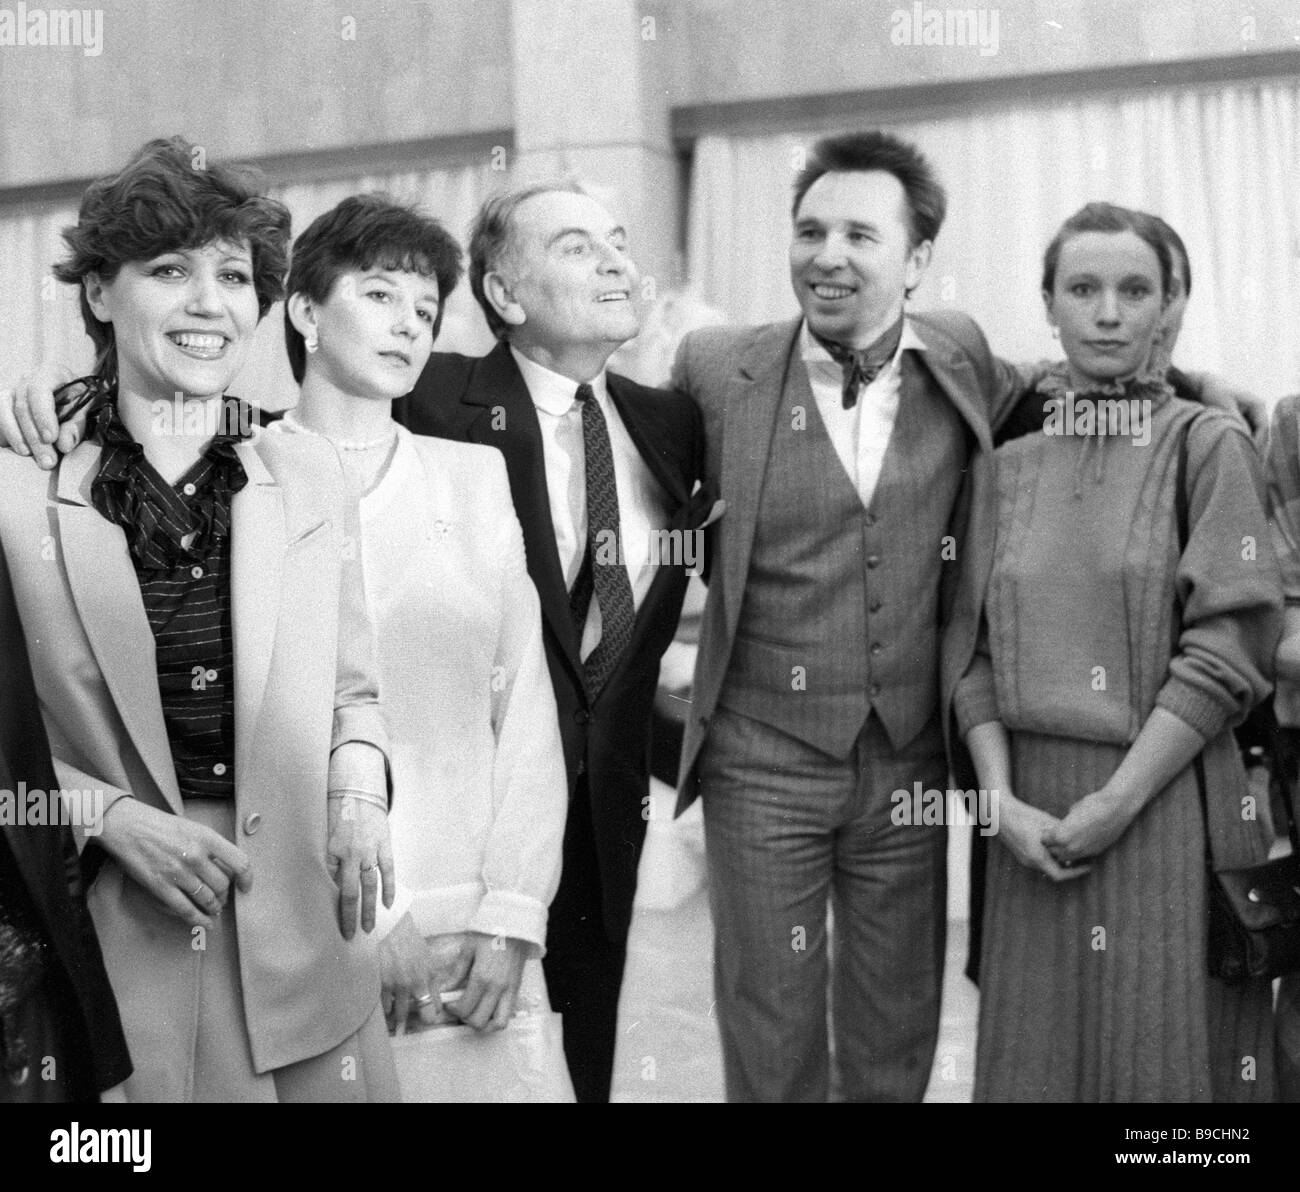 French couturier Pierre Cardin forth from right and Russian fashion designer Vyacheslav Zaitsev third from right - Stock Image